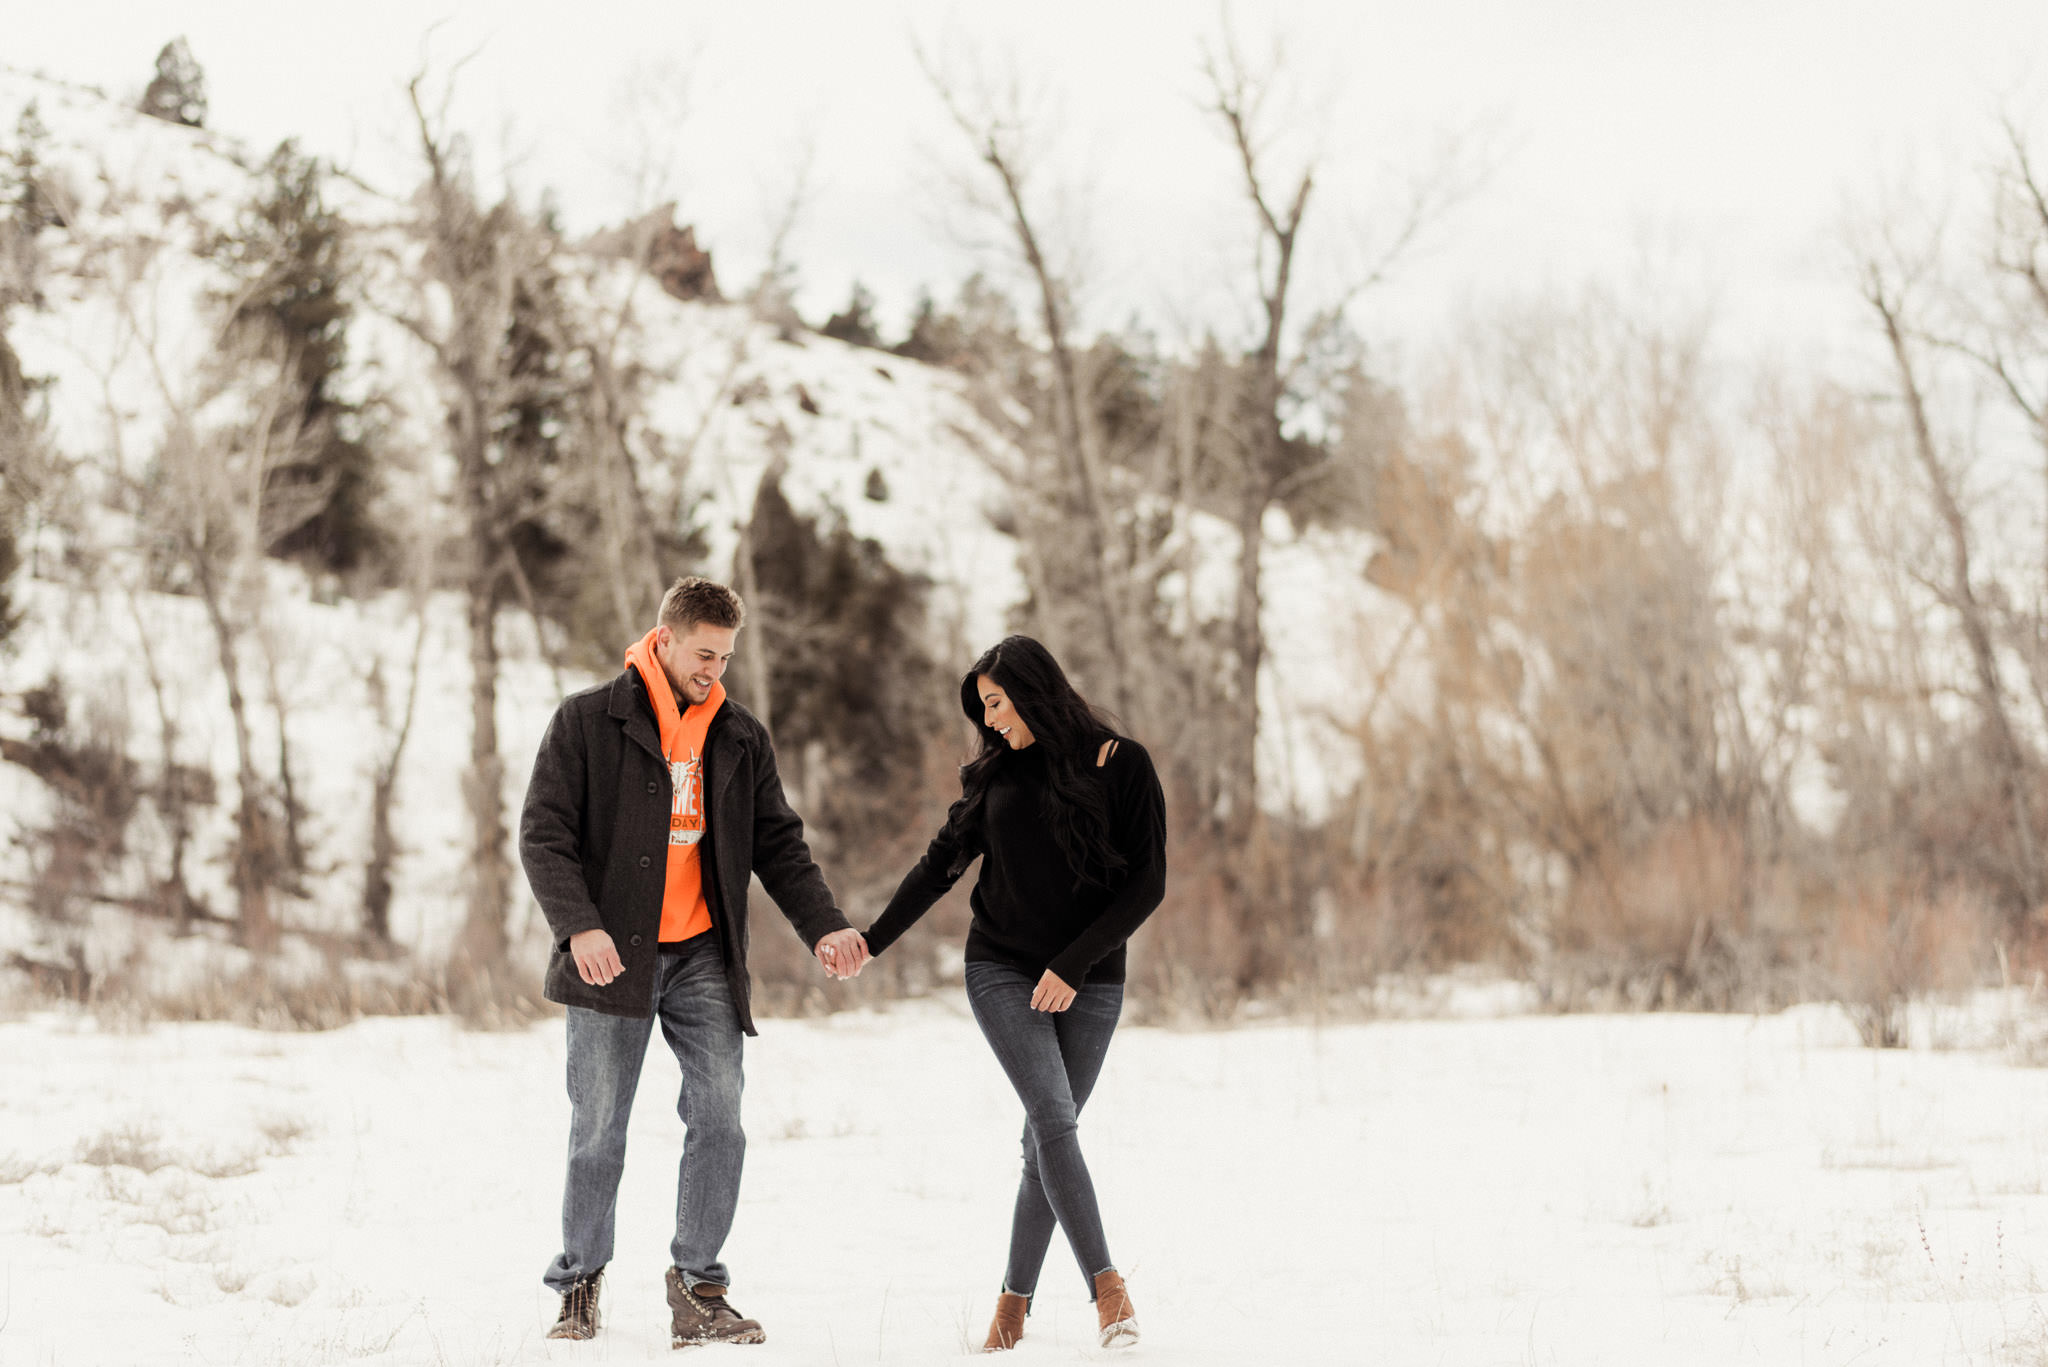 sandra-ryan-colorado-winter-snow-engagement-couples-valentines-red-houston-photographer-sm-36.jpg